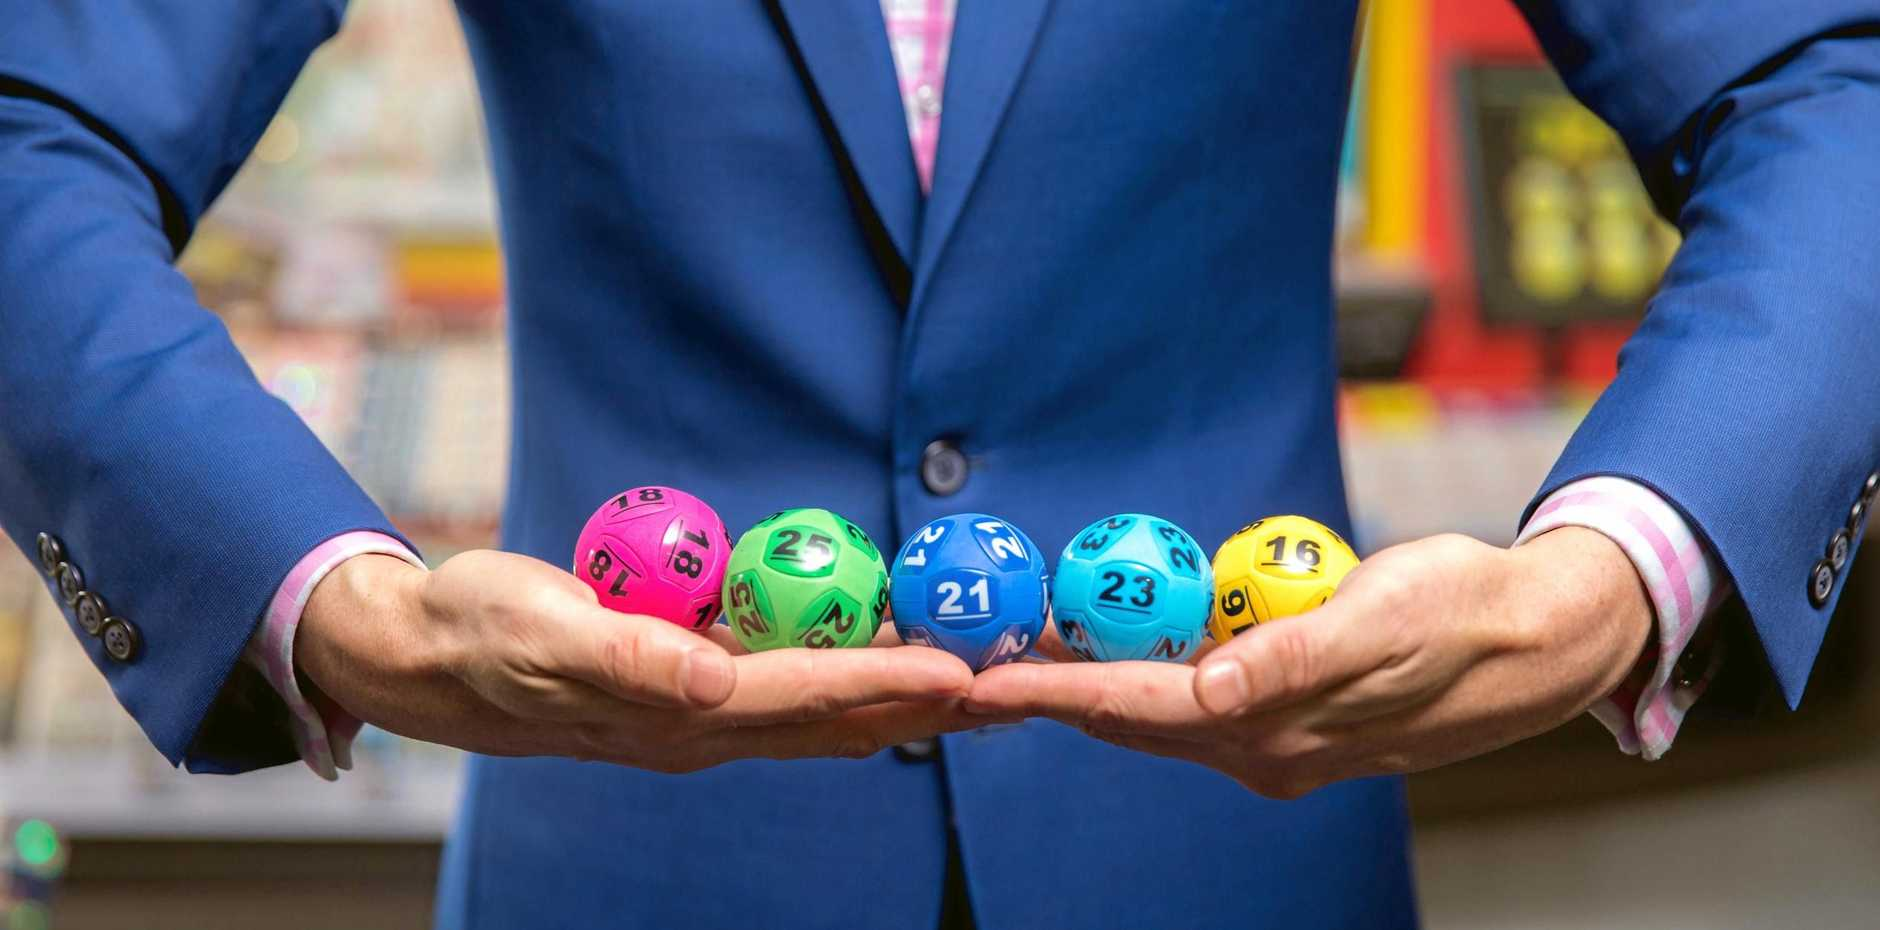 BIG WIN: A local tradie scooped up some riches on Saturday night in the Gold Lotto.